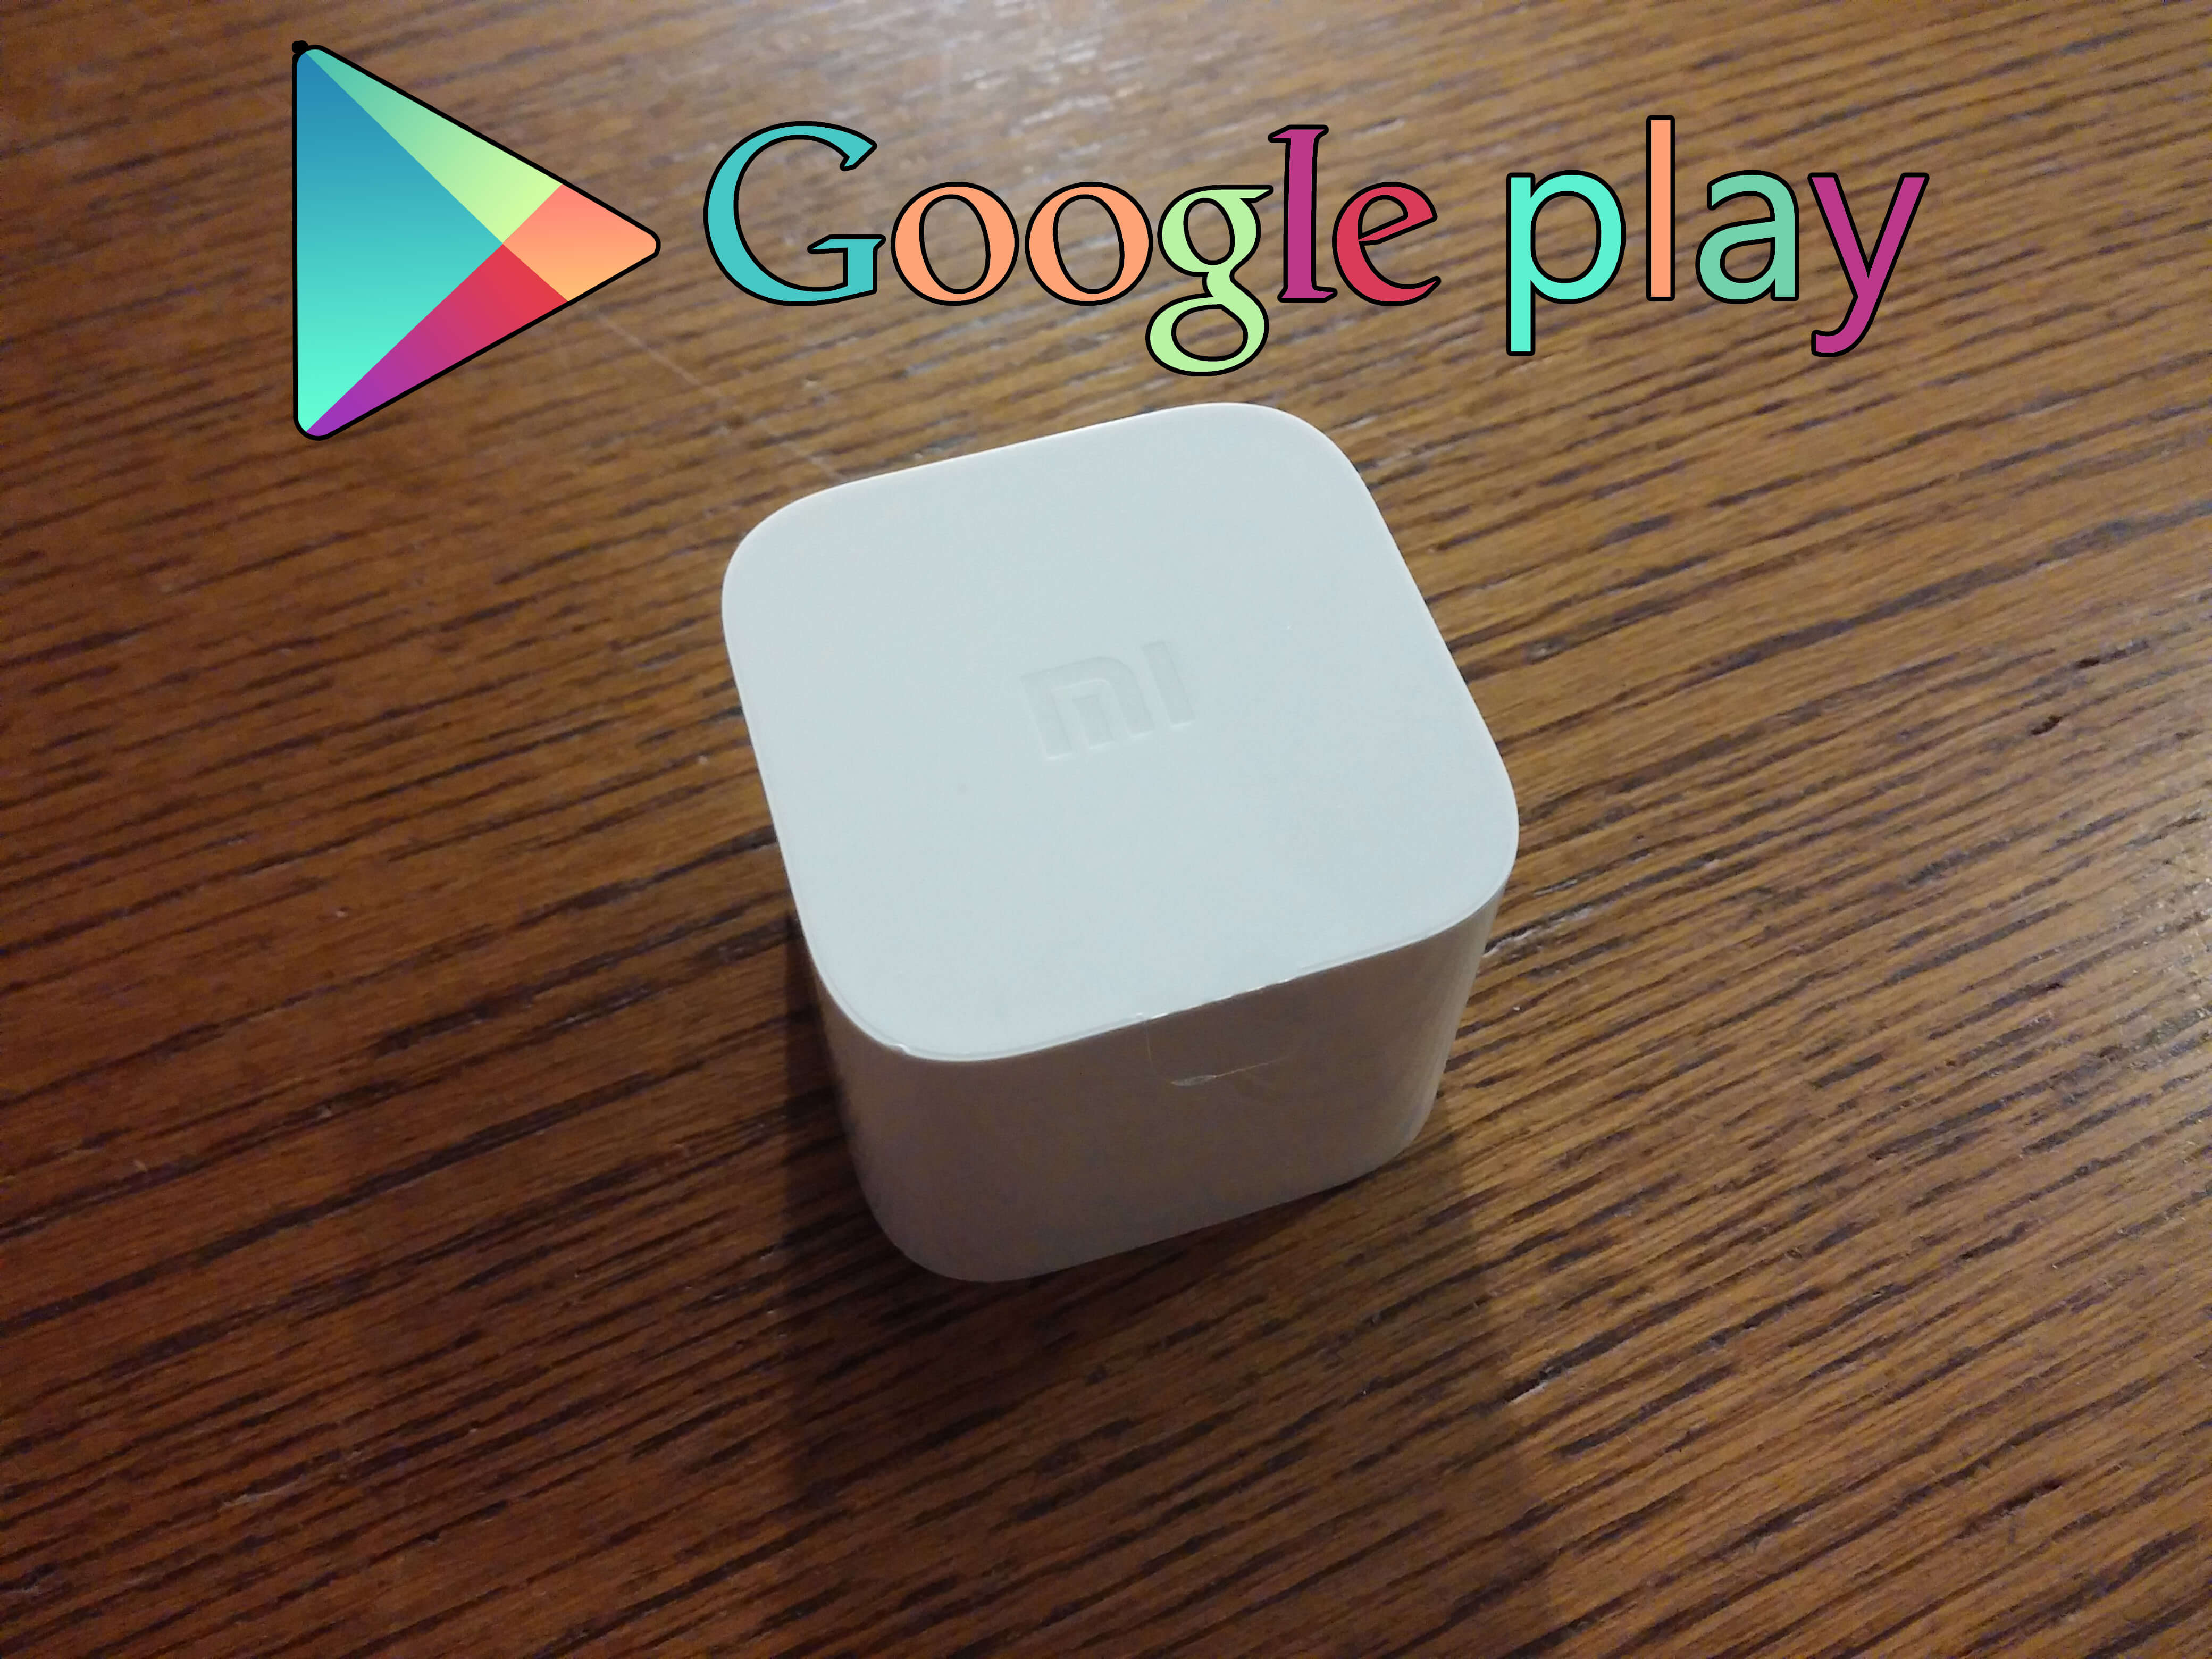 How To Install The Google Play Store On The Xiaomi Mi Box Mini